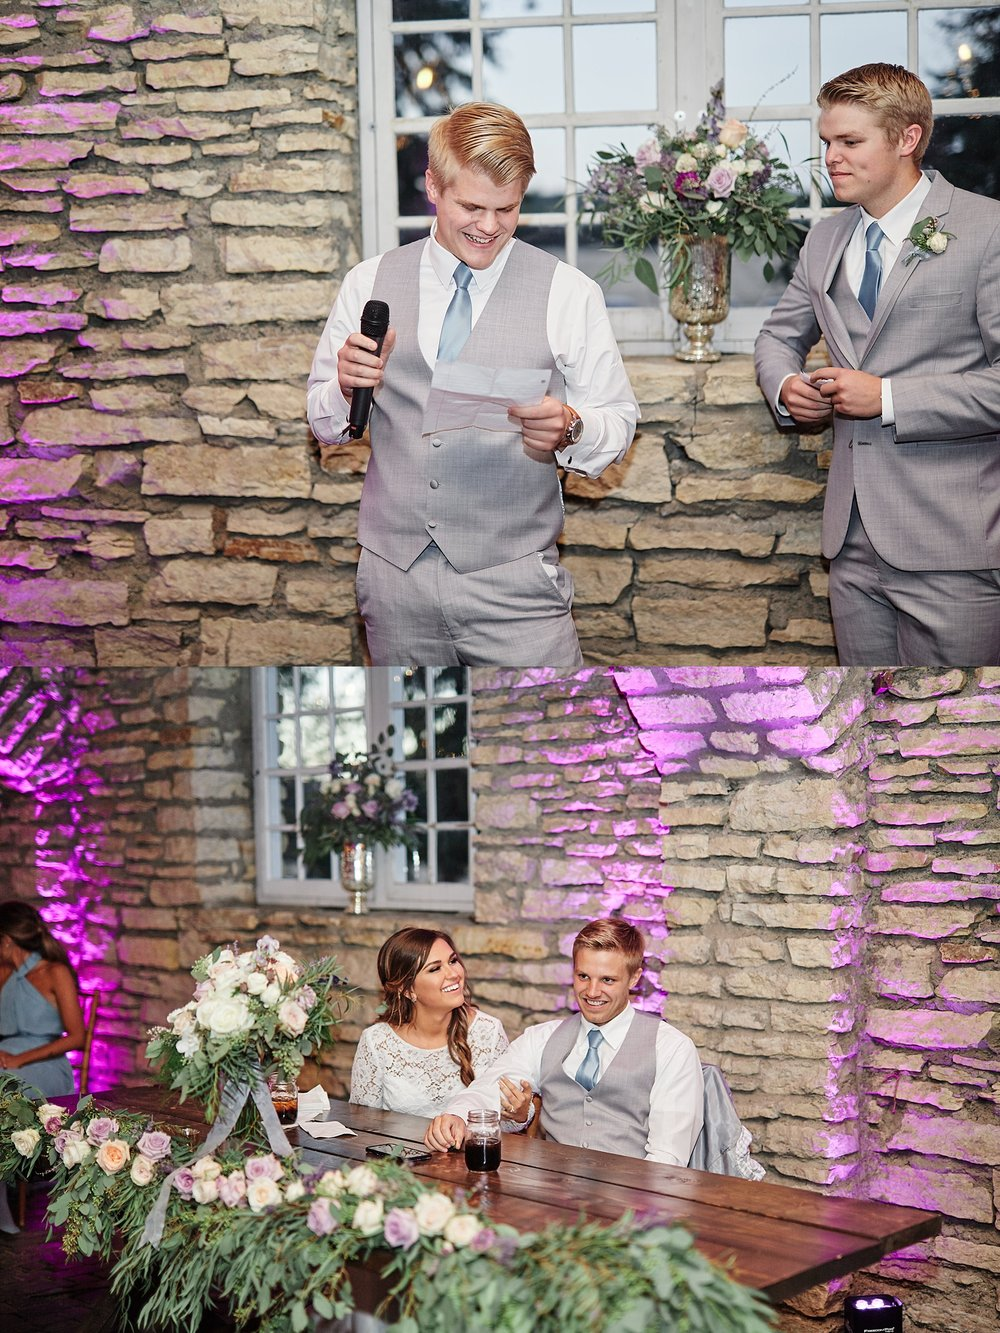 Maywood-Stone-Barn-Wedding-Rochester-Minnesota-Perry-James-Photo_0682.jpg